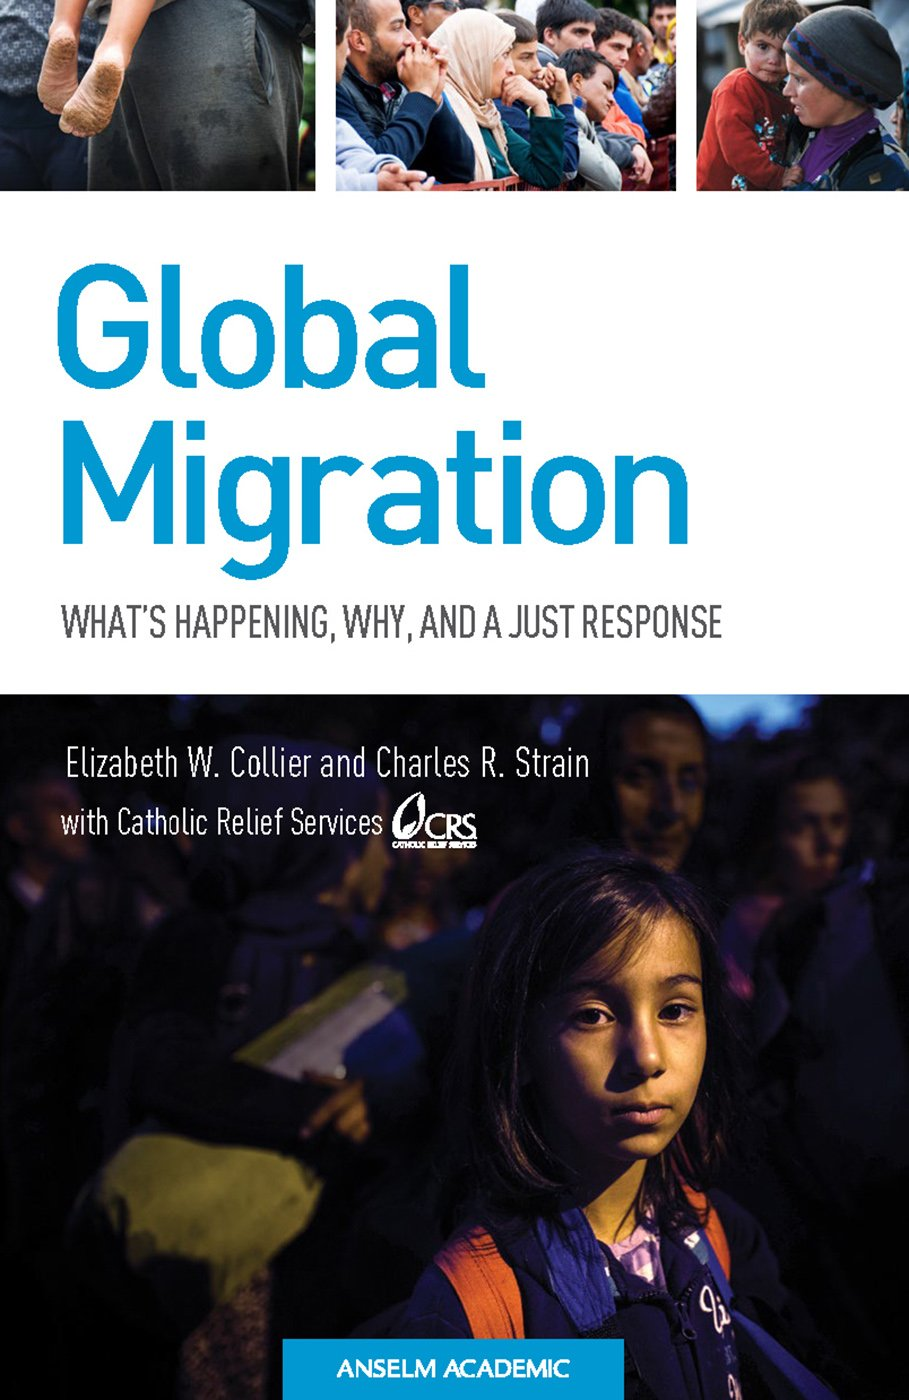 Global migration whats happening why and a just response global migration whats happening why and a just response elizabeth w collier charles r strain 9781599828947 amazon books fandeluxe Image collections